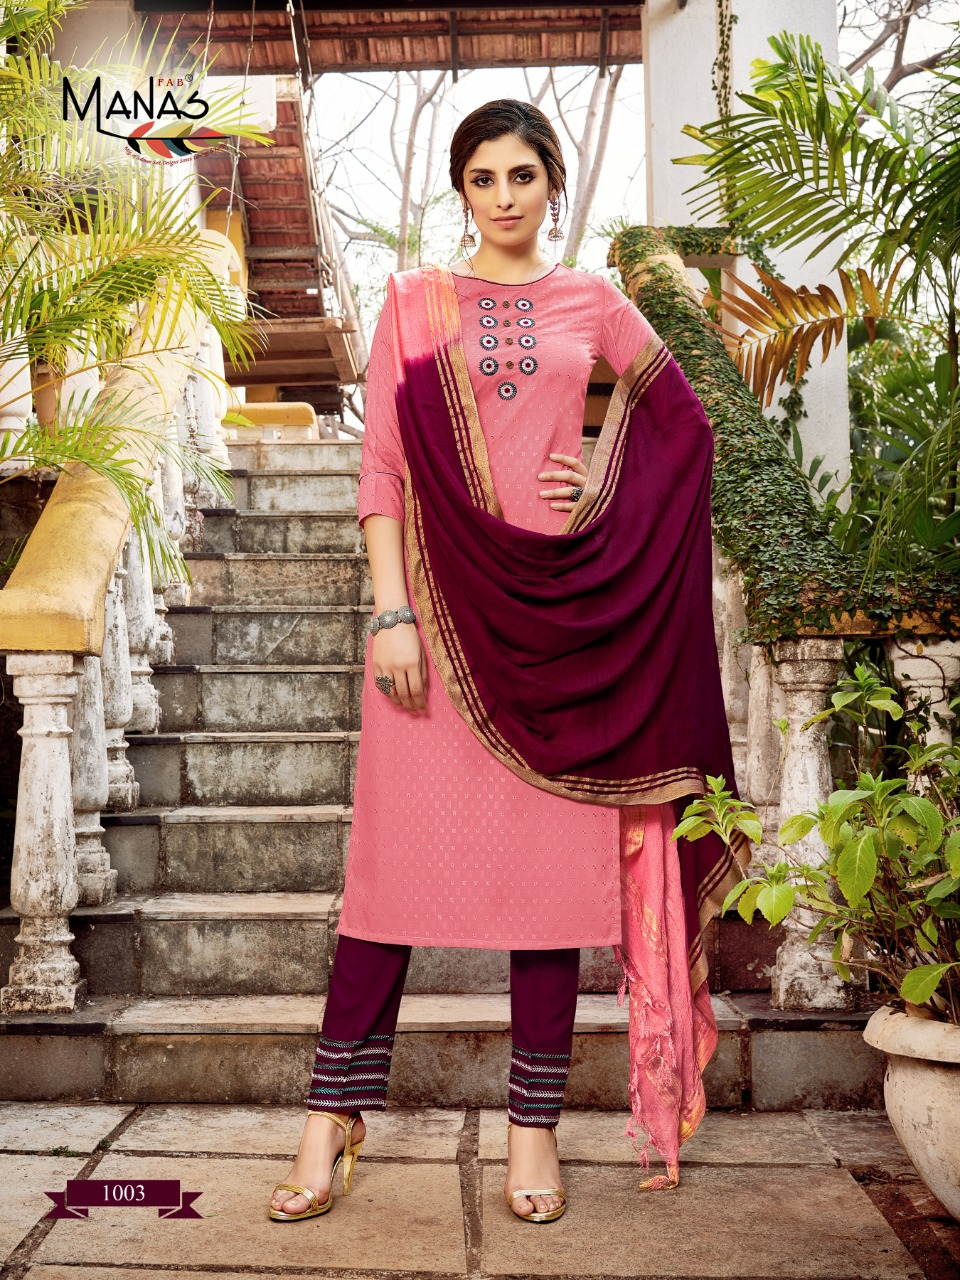 Manas Kaara Designer Fancy Dobby Weaving With Embroidery Work Stitch Suits Wholesale